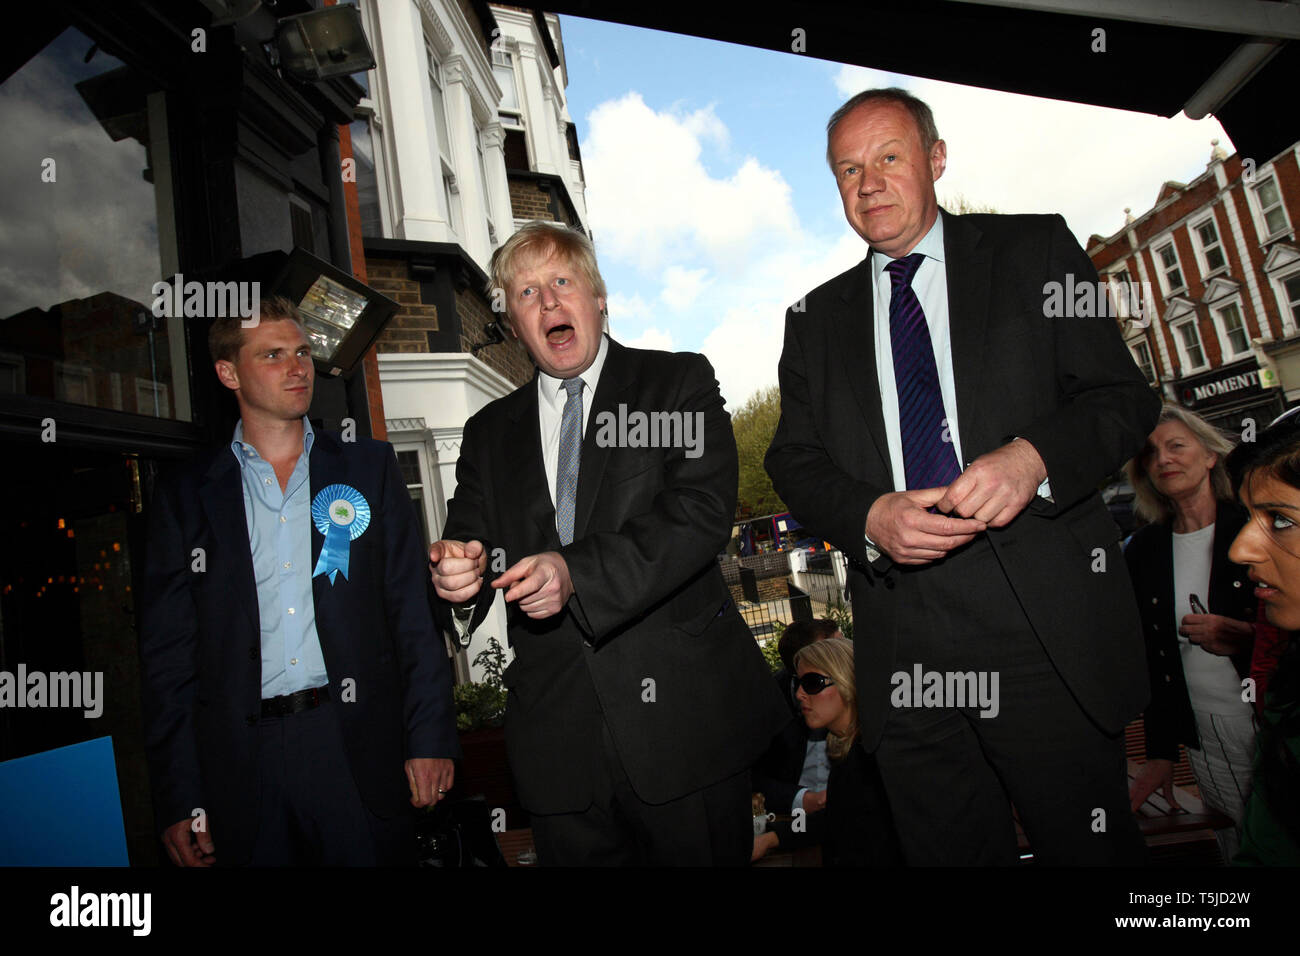 Boris Johnson and Damian Green campaigning on behalf of Conservative parliamentary candidate Chris Philp. London. 30.04.2010. - Stock Image